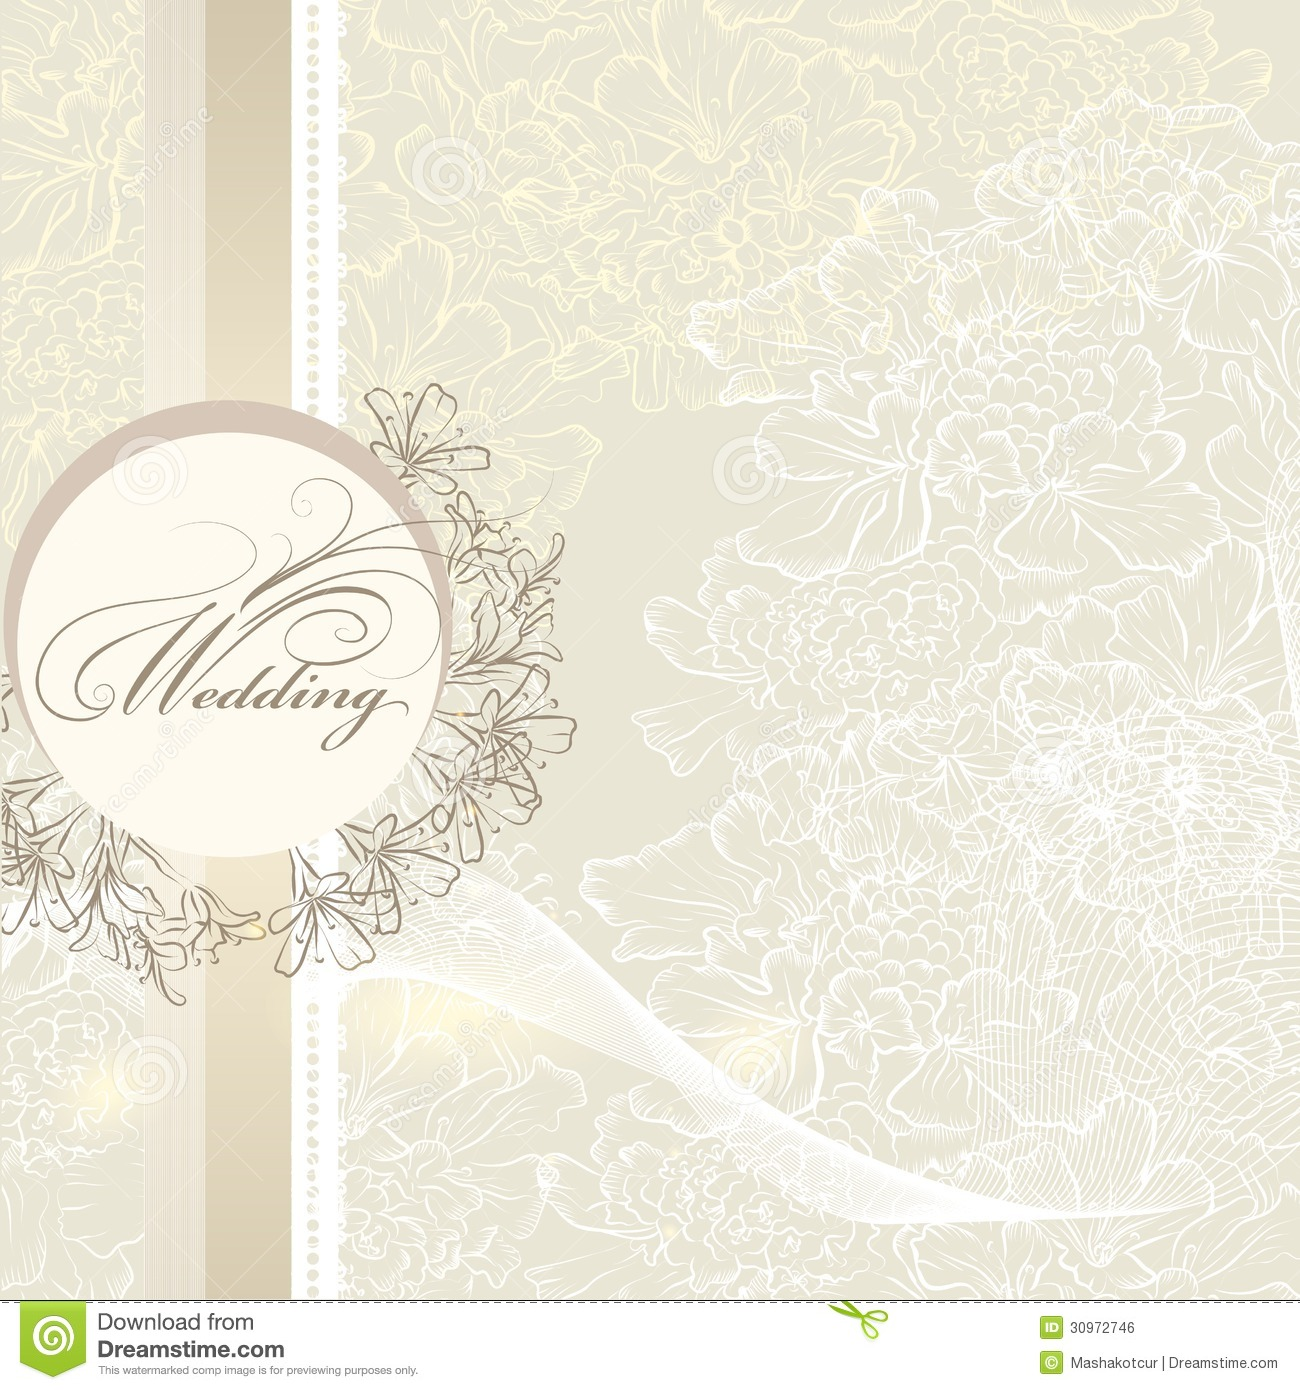 Elegant Wedding Invitation Card With Banner And Flowers Stock Vector ...